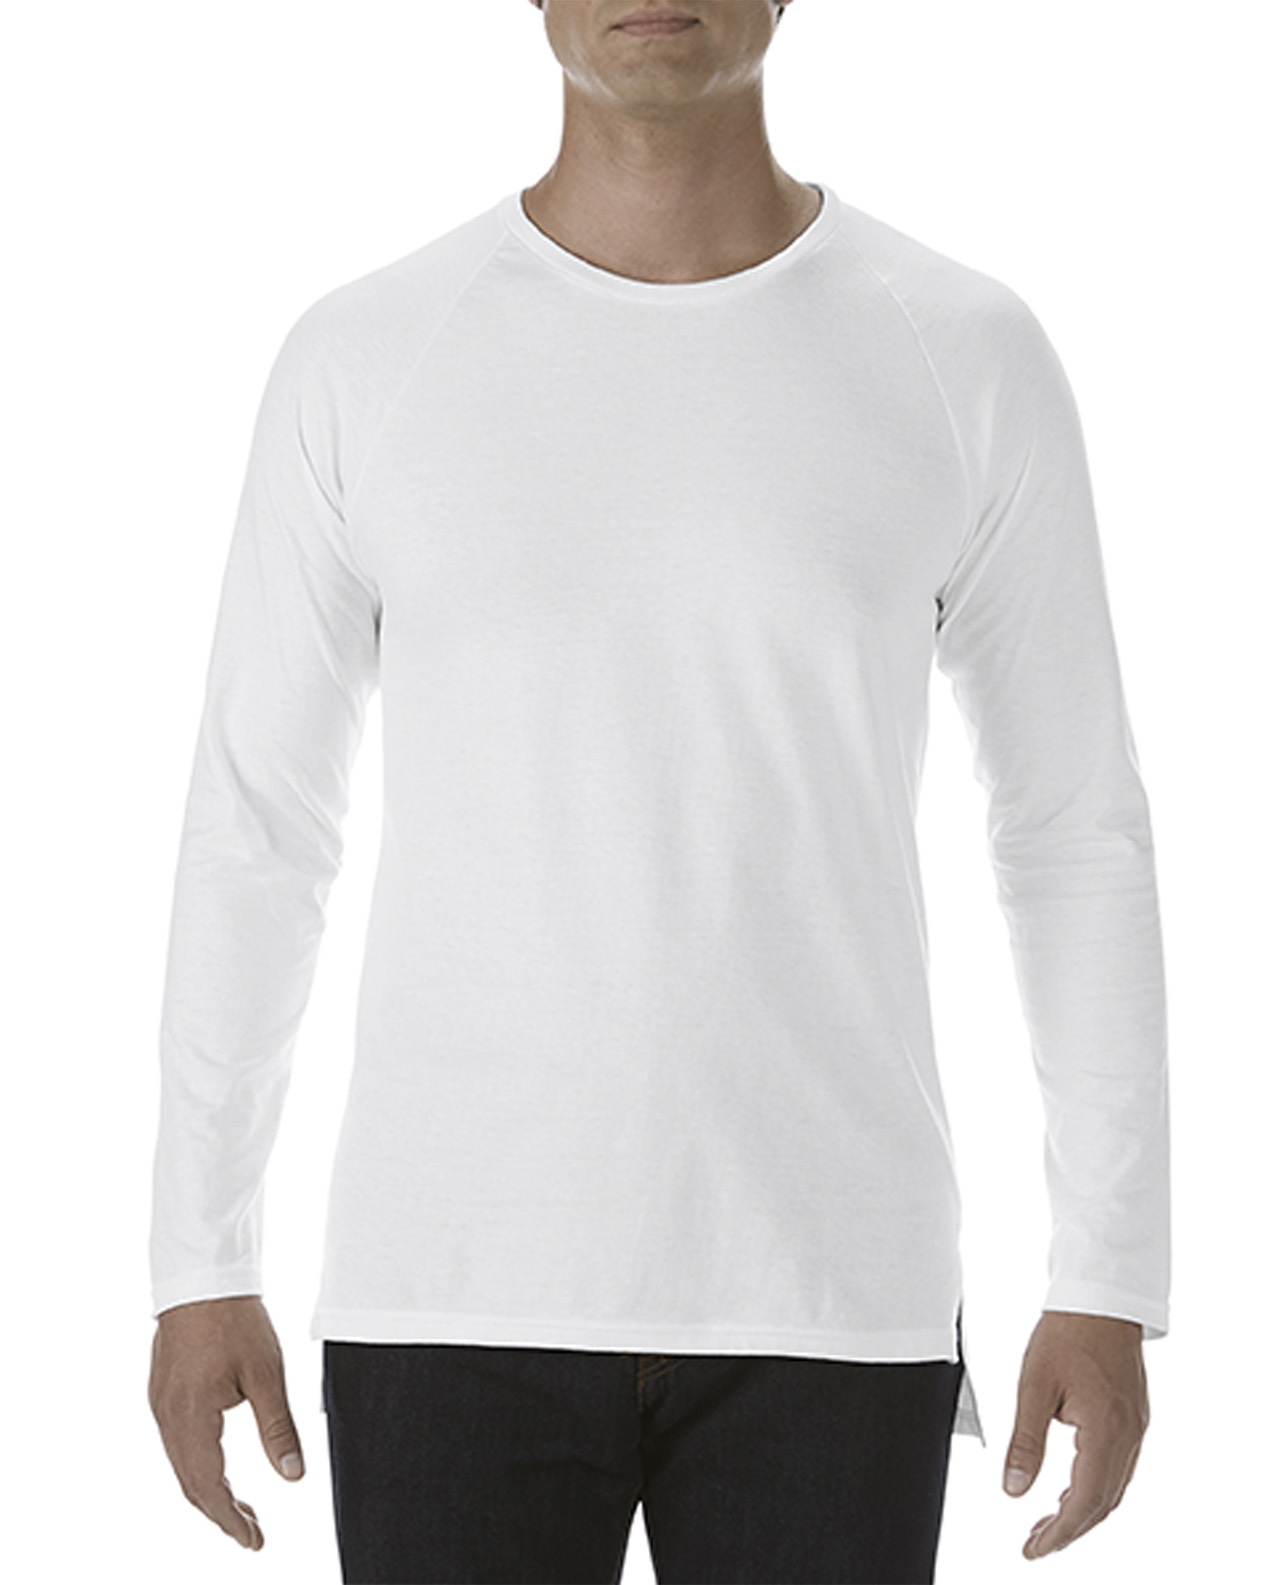 6c9eb3846907 5628 | 150.0 g/m² | Adult Lightweight Long & Lean Long Sleeve Raglan ...